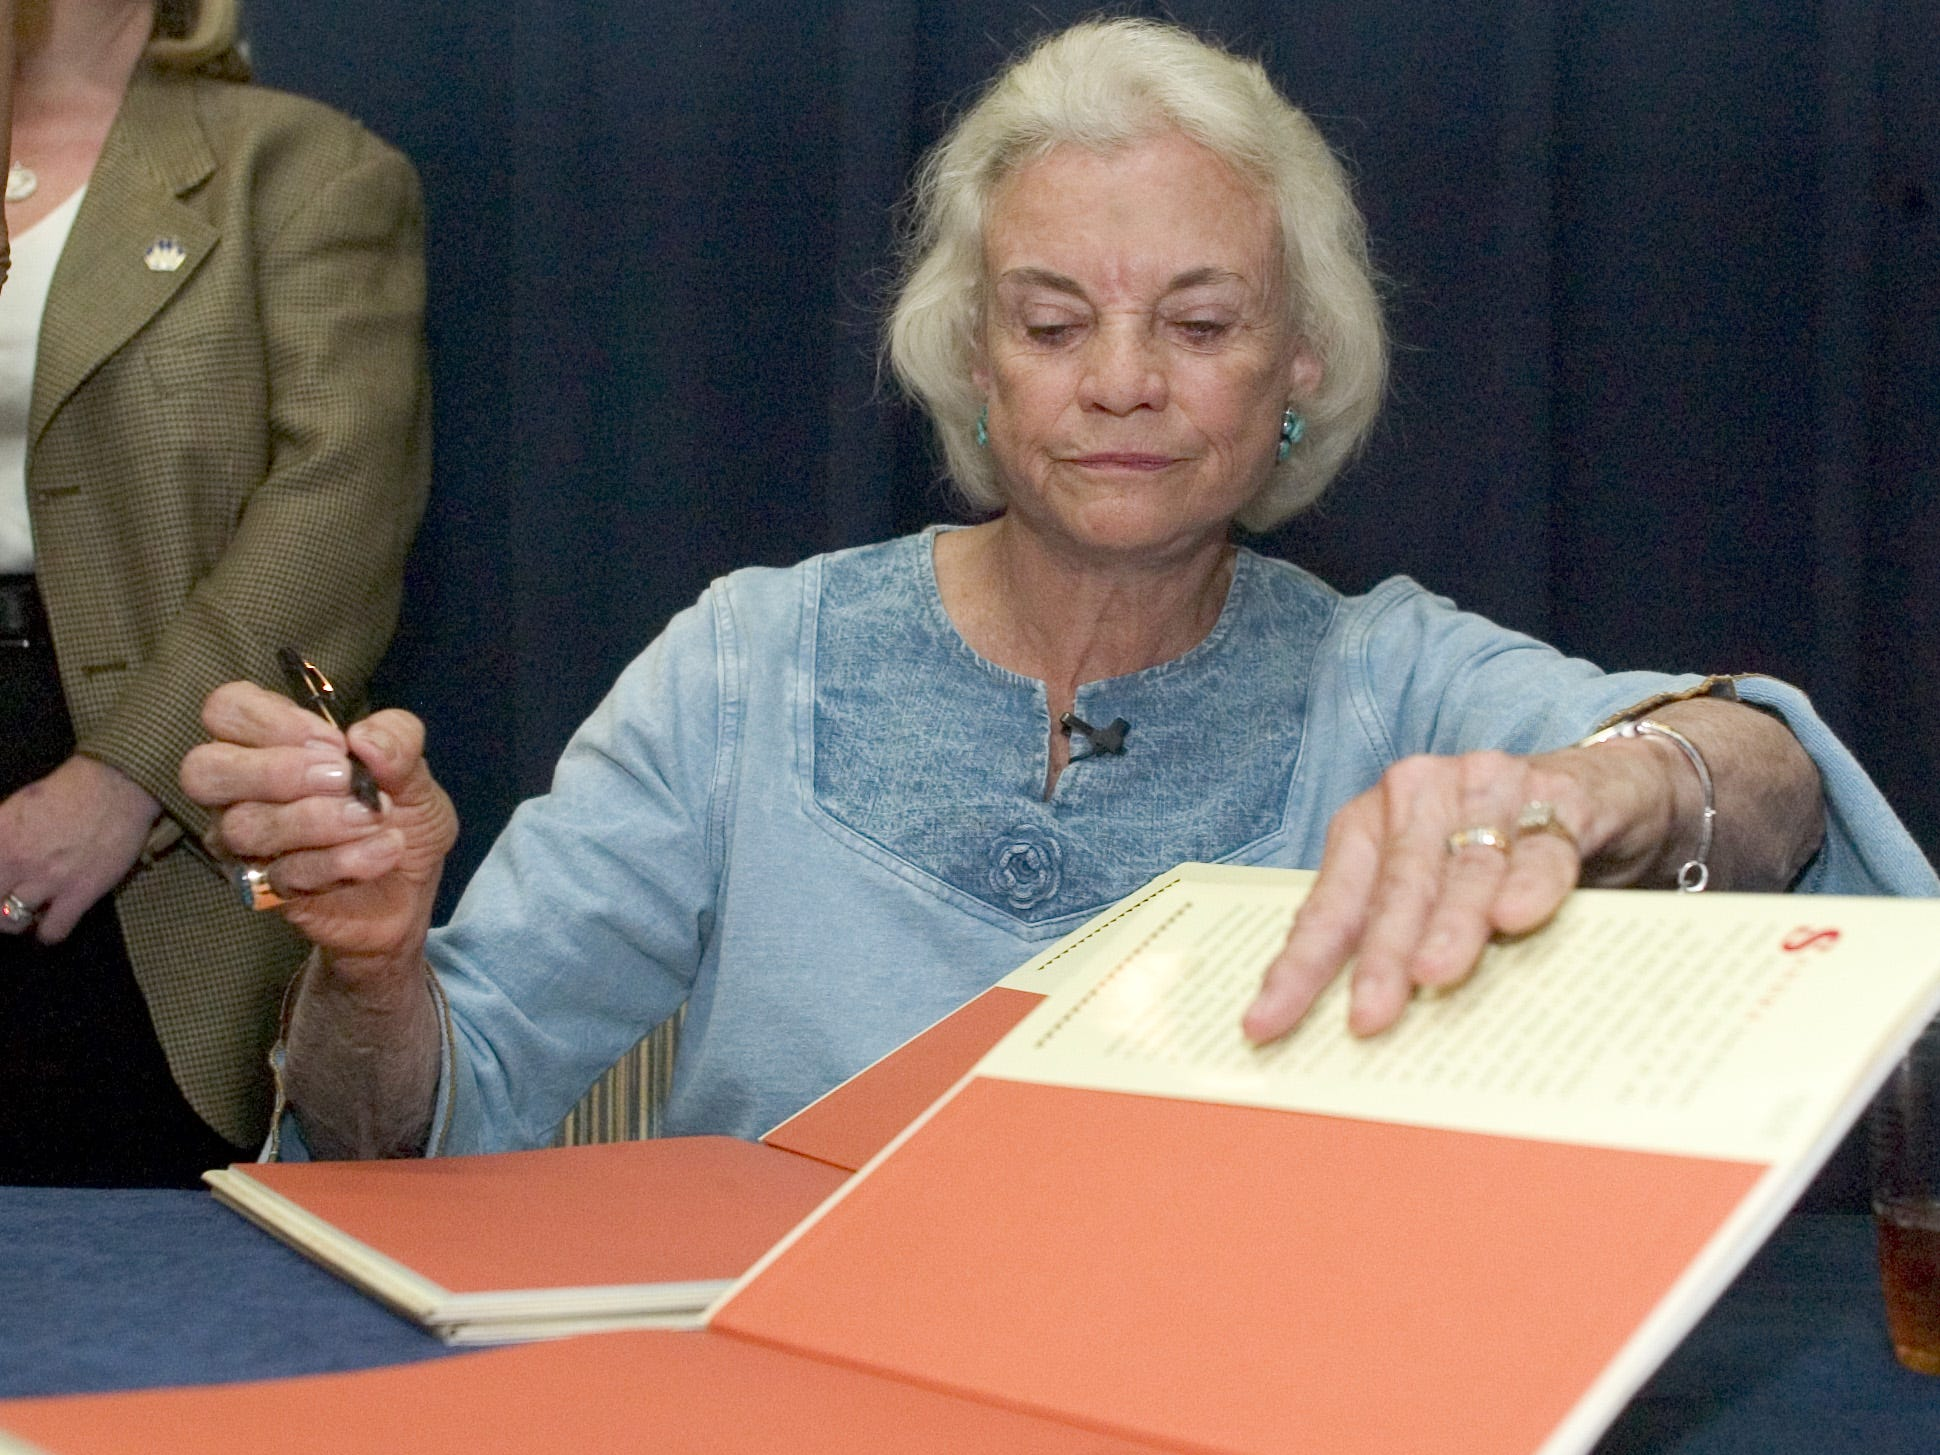 Justice Sandra Day O'Connor signs copies of her newly released children's book, Chico, on Sept. 18, 2005, at the Scottsdale Civic Center Library.  Justice O'Connor visited the library to talk about her childhood growing up in Arizona and her new book.